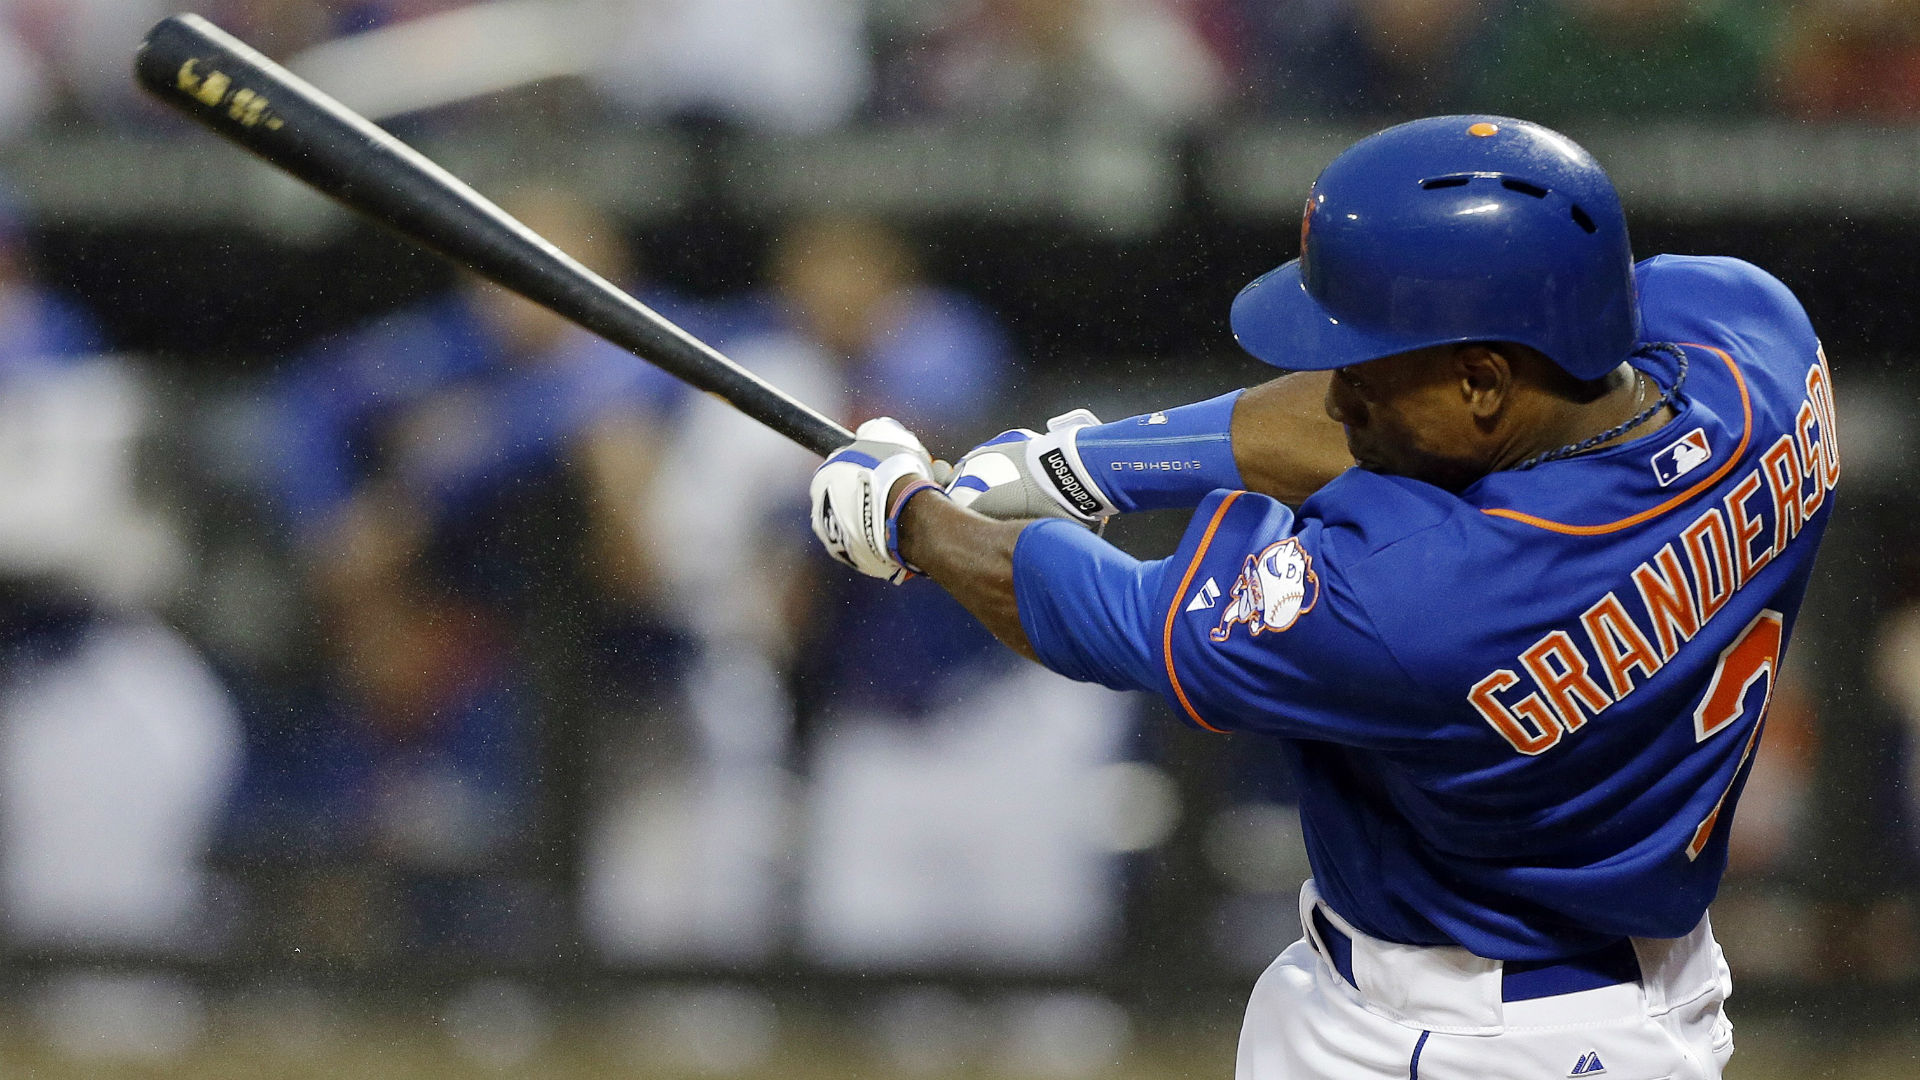 Daily fantasy baseball lineup: Today's buy/sell candidates for DraftStreet leagues